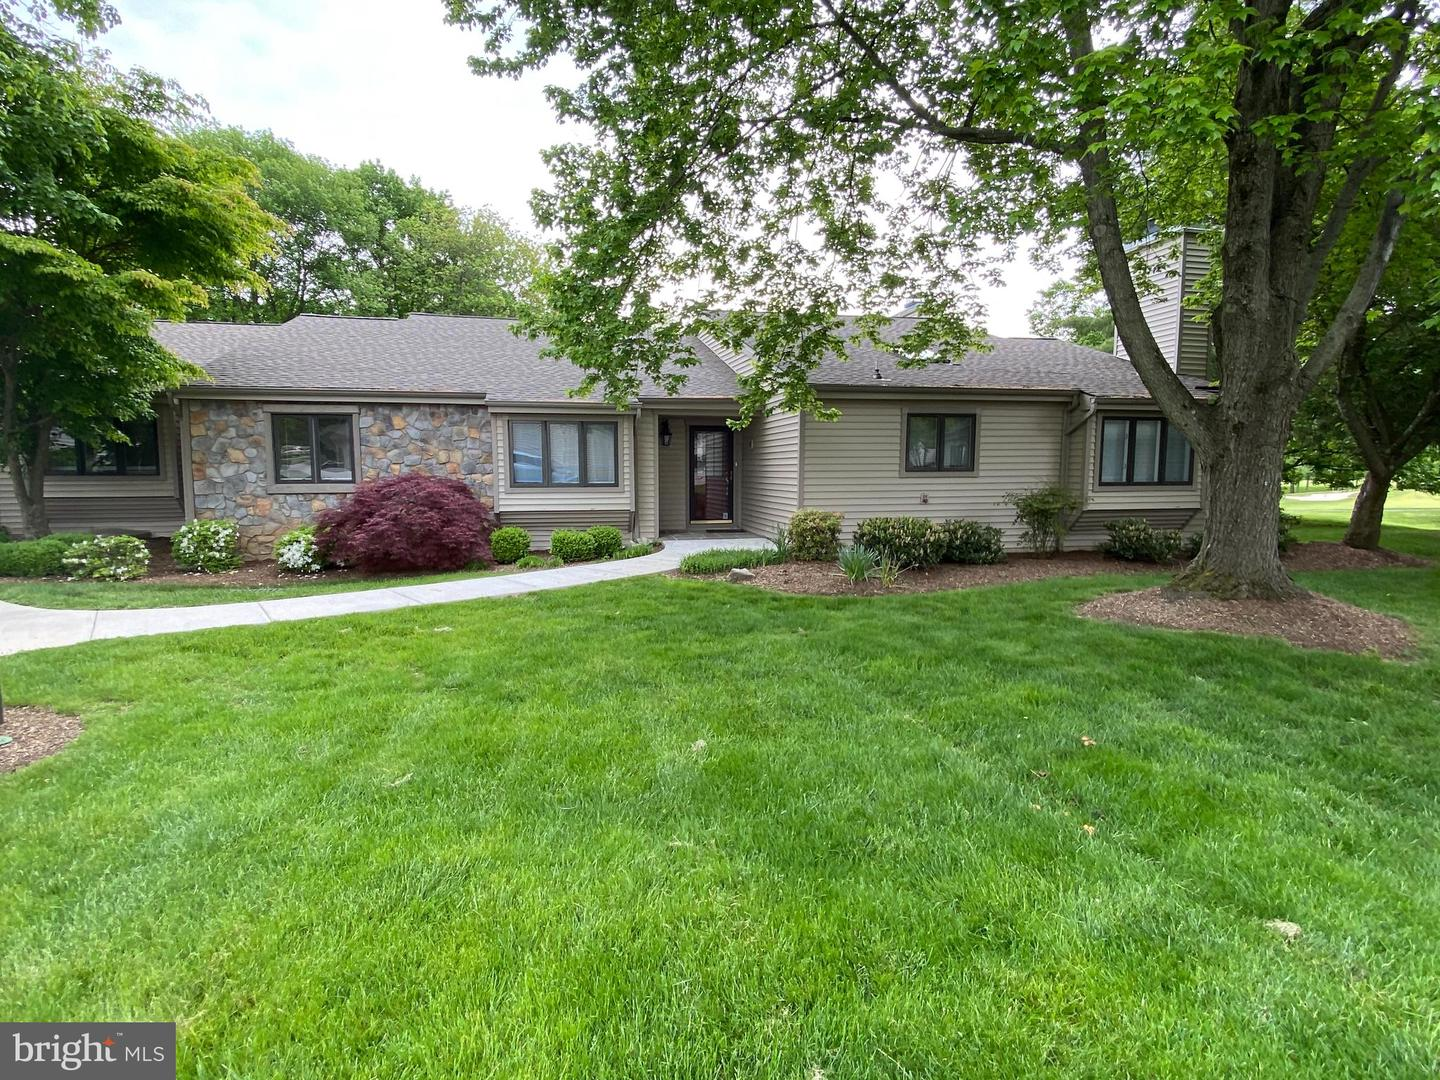 433 Eaton Way West Chester, PA 19380